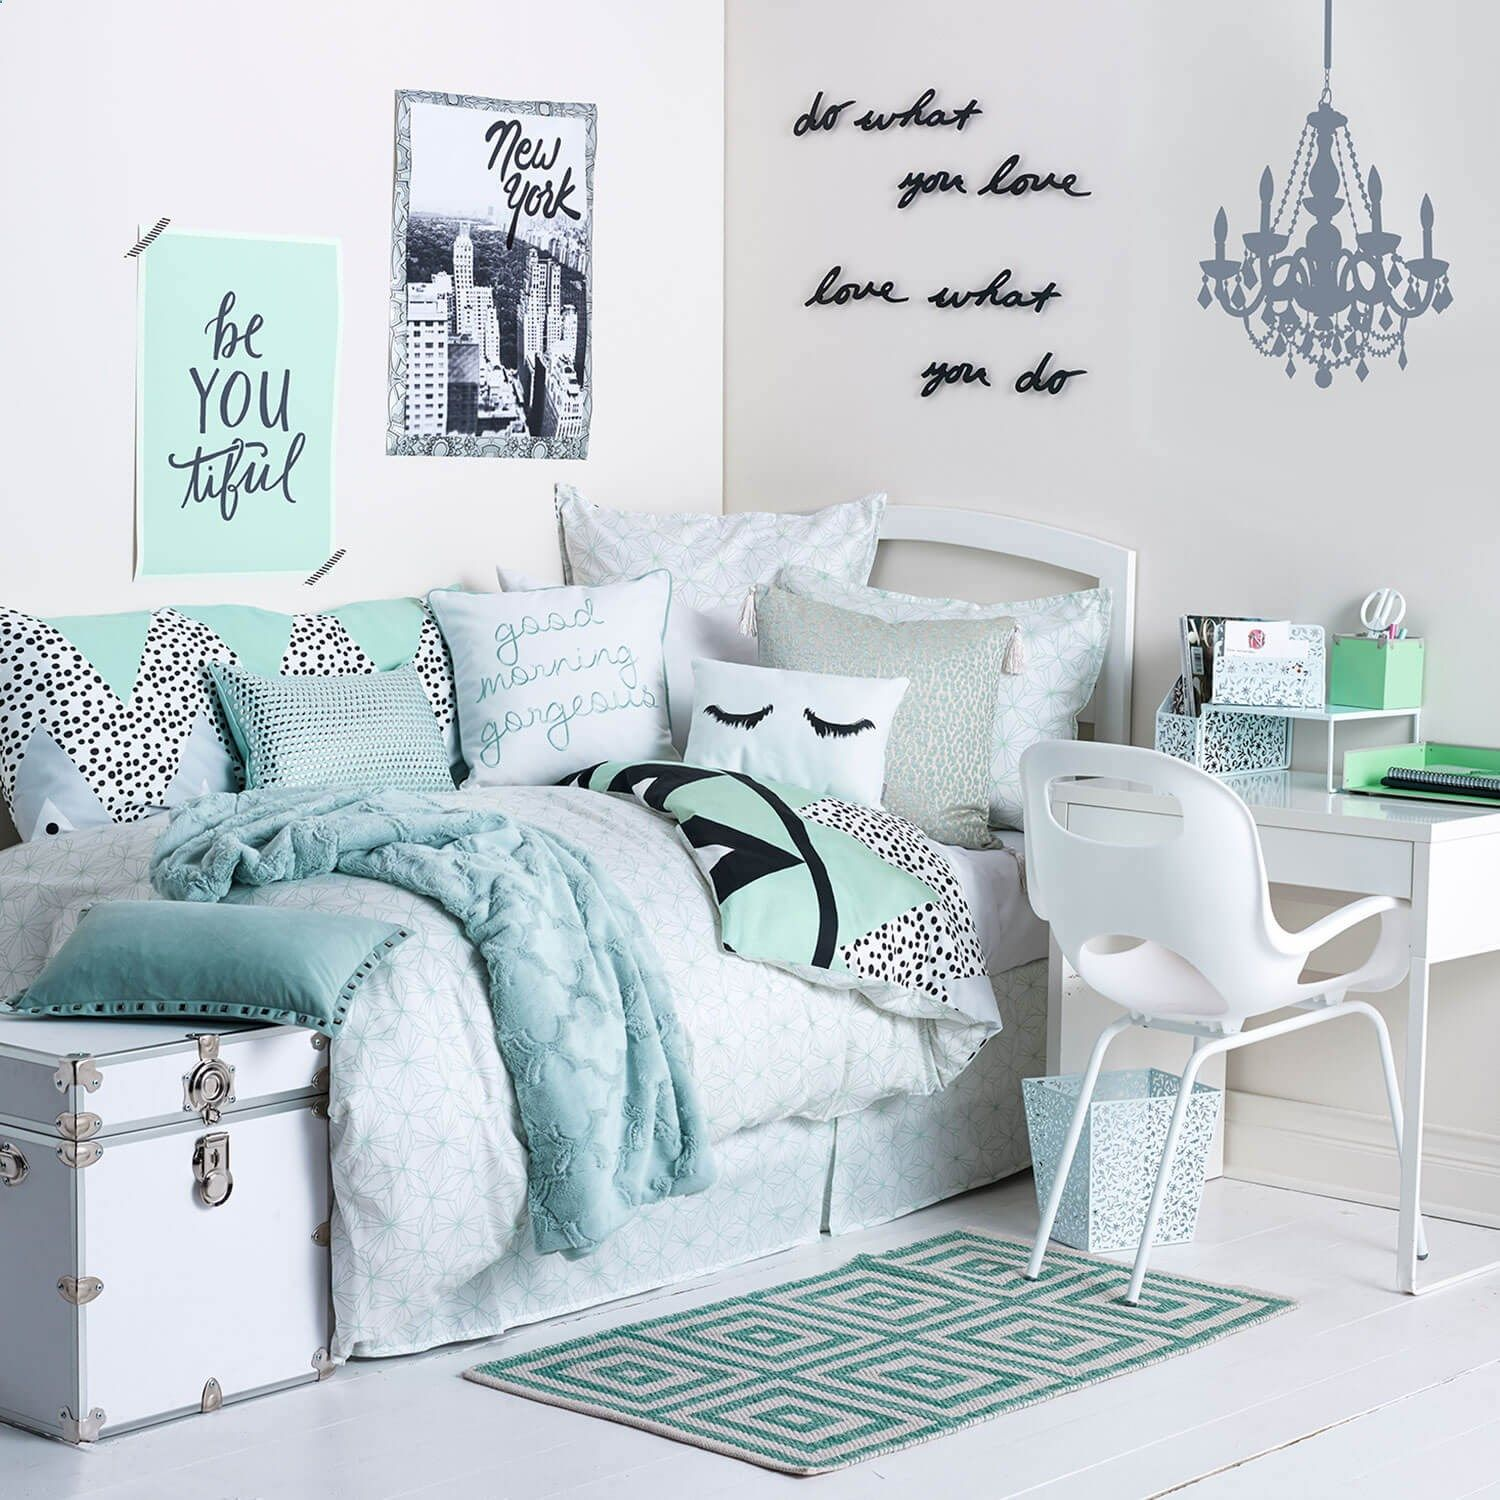 Cute Dorm Room Ideas That You Need To Copy These